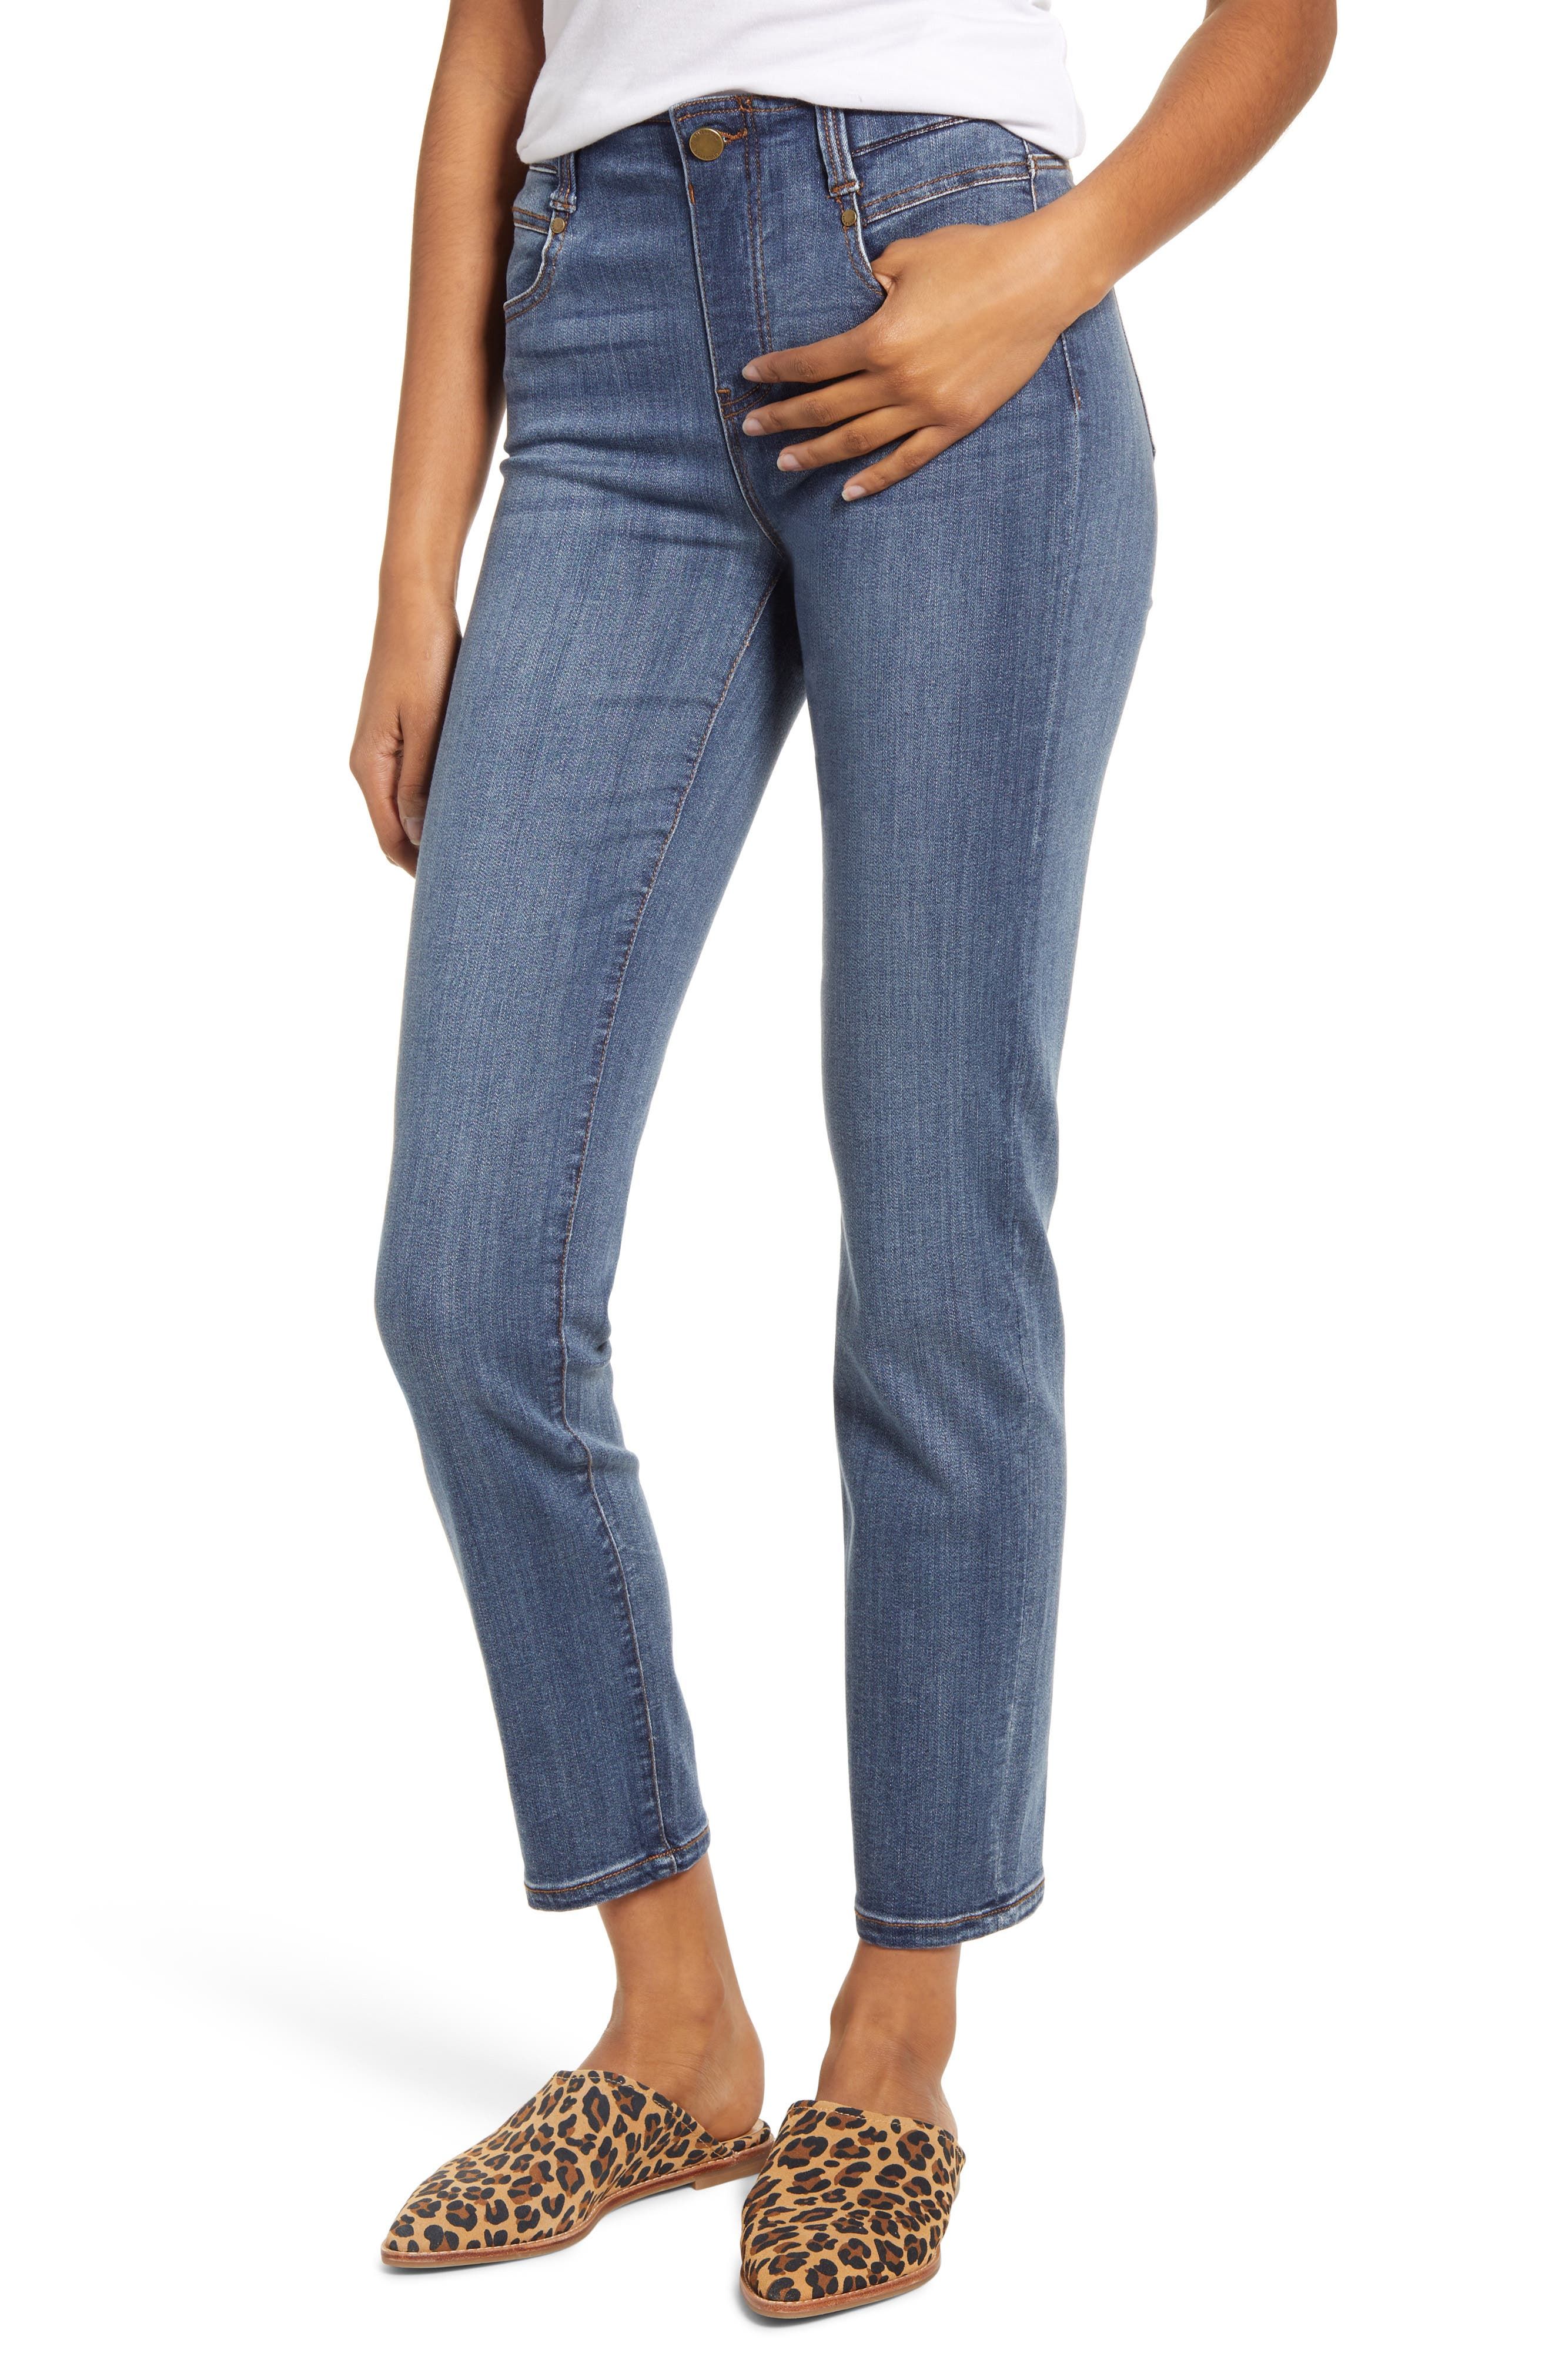 Gia Glider Slim Pull-On Jeans